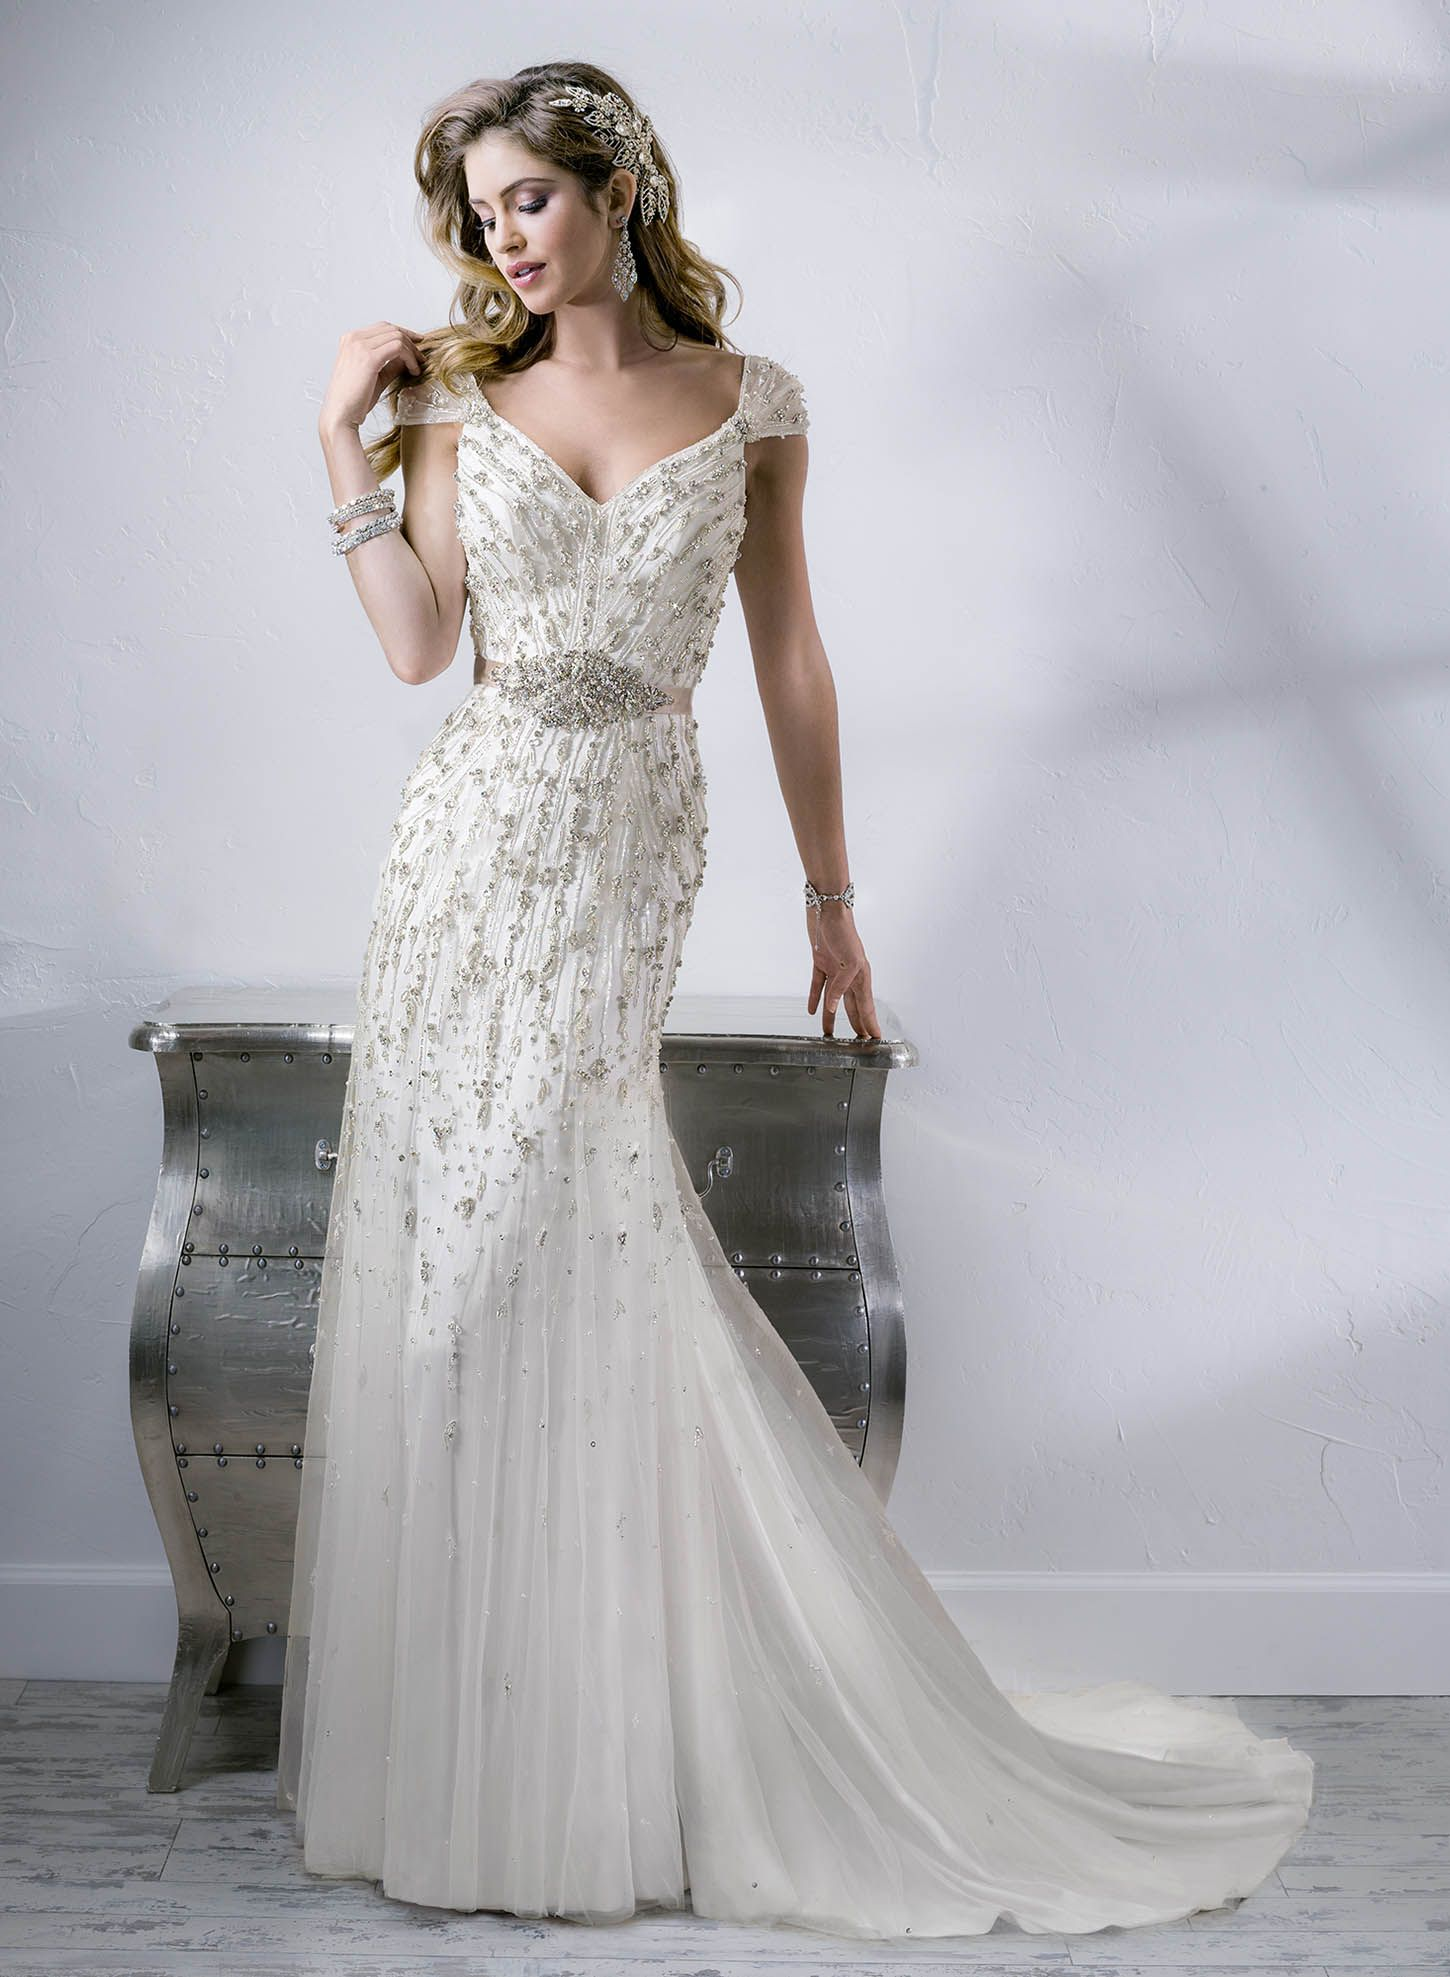 Bellevue By Maggie Sottero 1920 S Art Deco Great Gatsby Wedding Dress